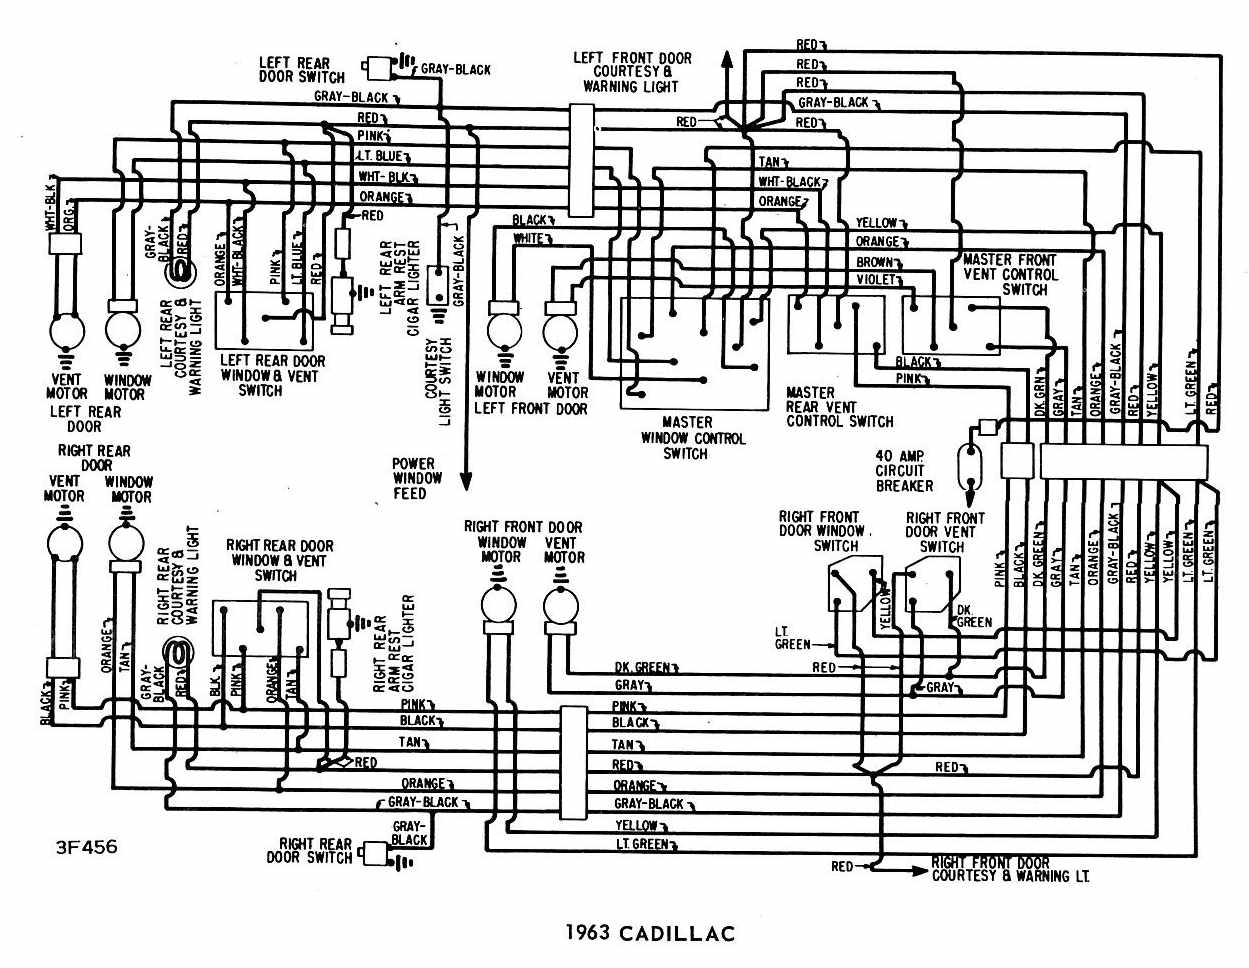 1955 cadillac series 62 wiring diagram example electrical wiring rh olkha co